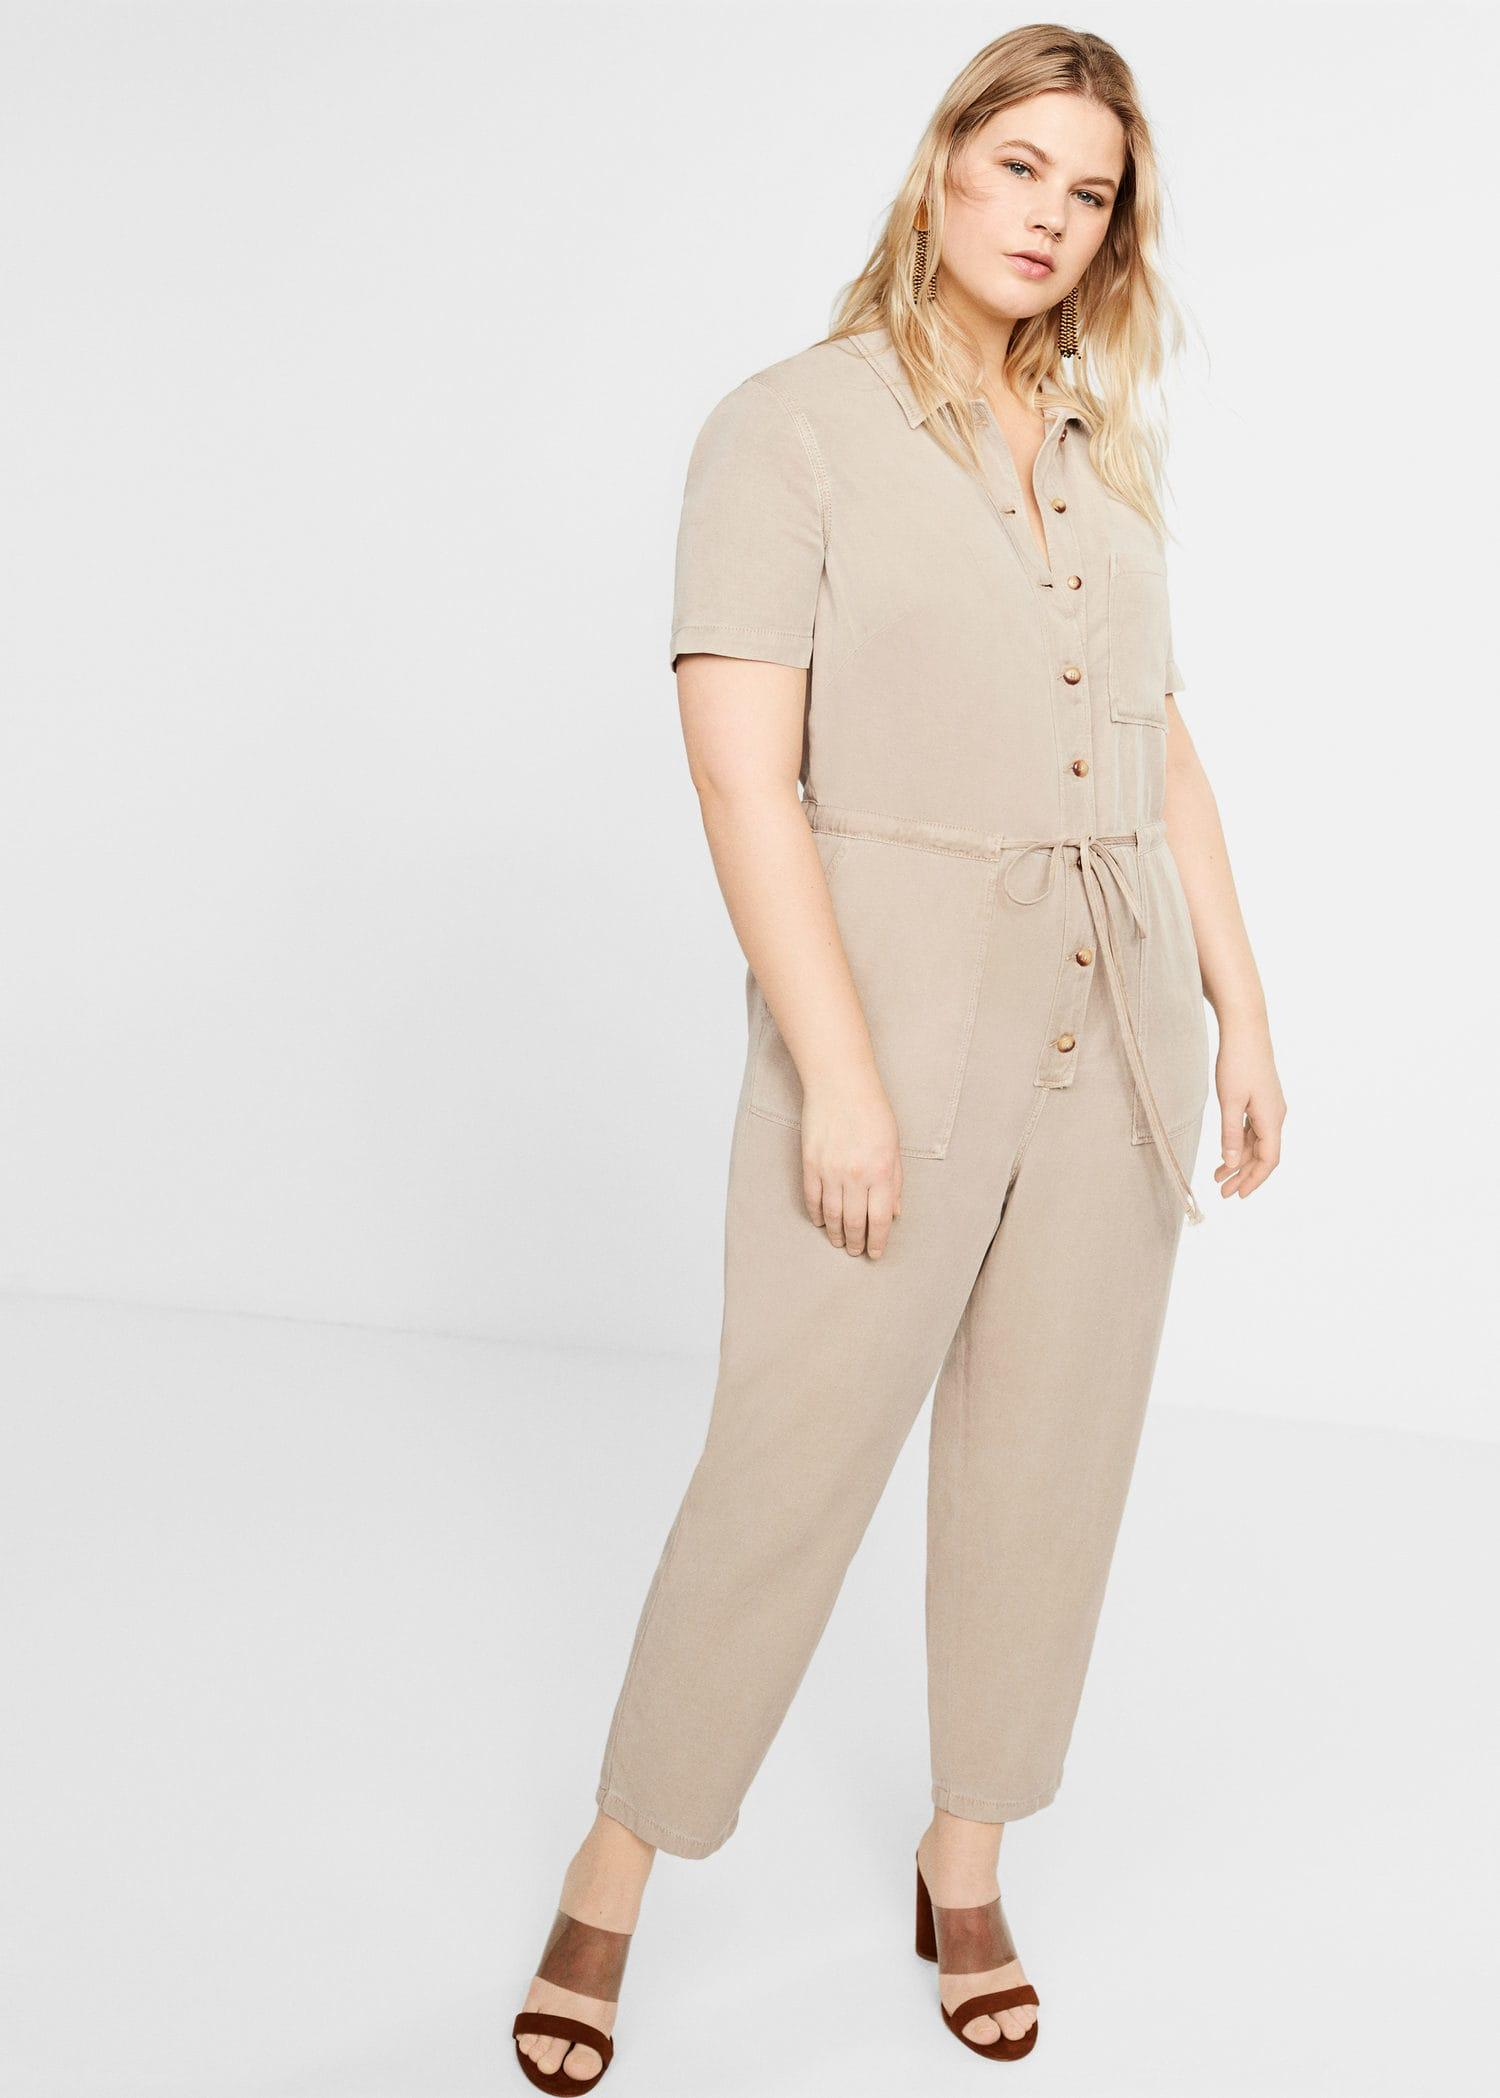 cea61fcfa0 Violeta by Mango Long Soft Jumpsuit in Natural - Lyst